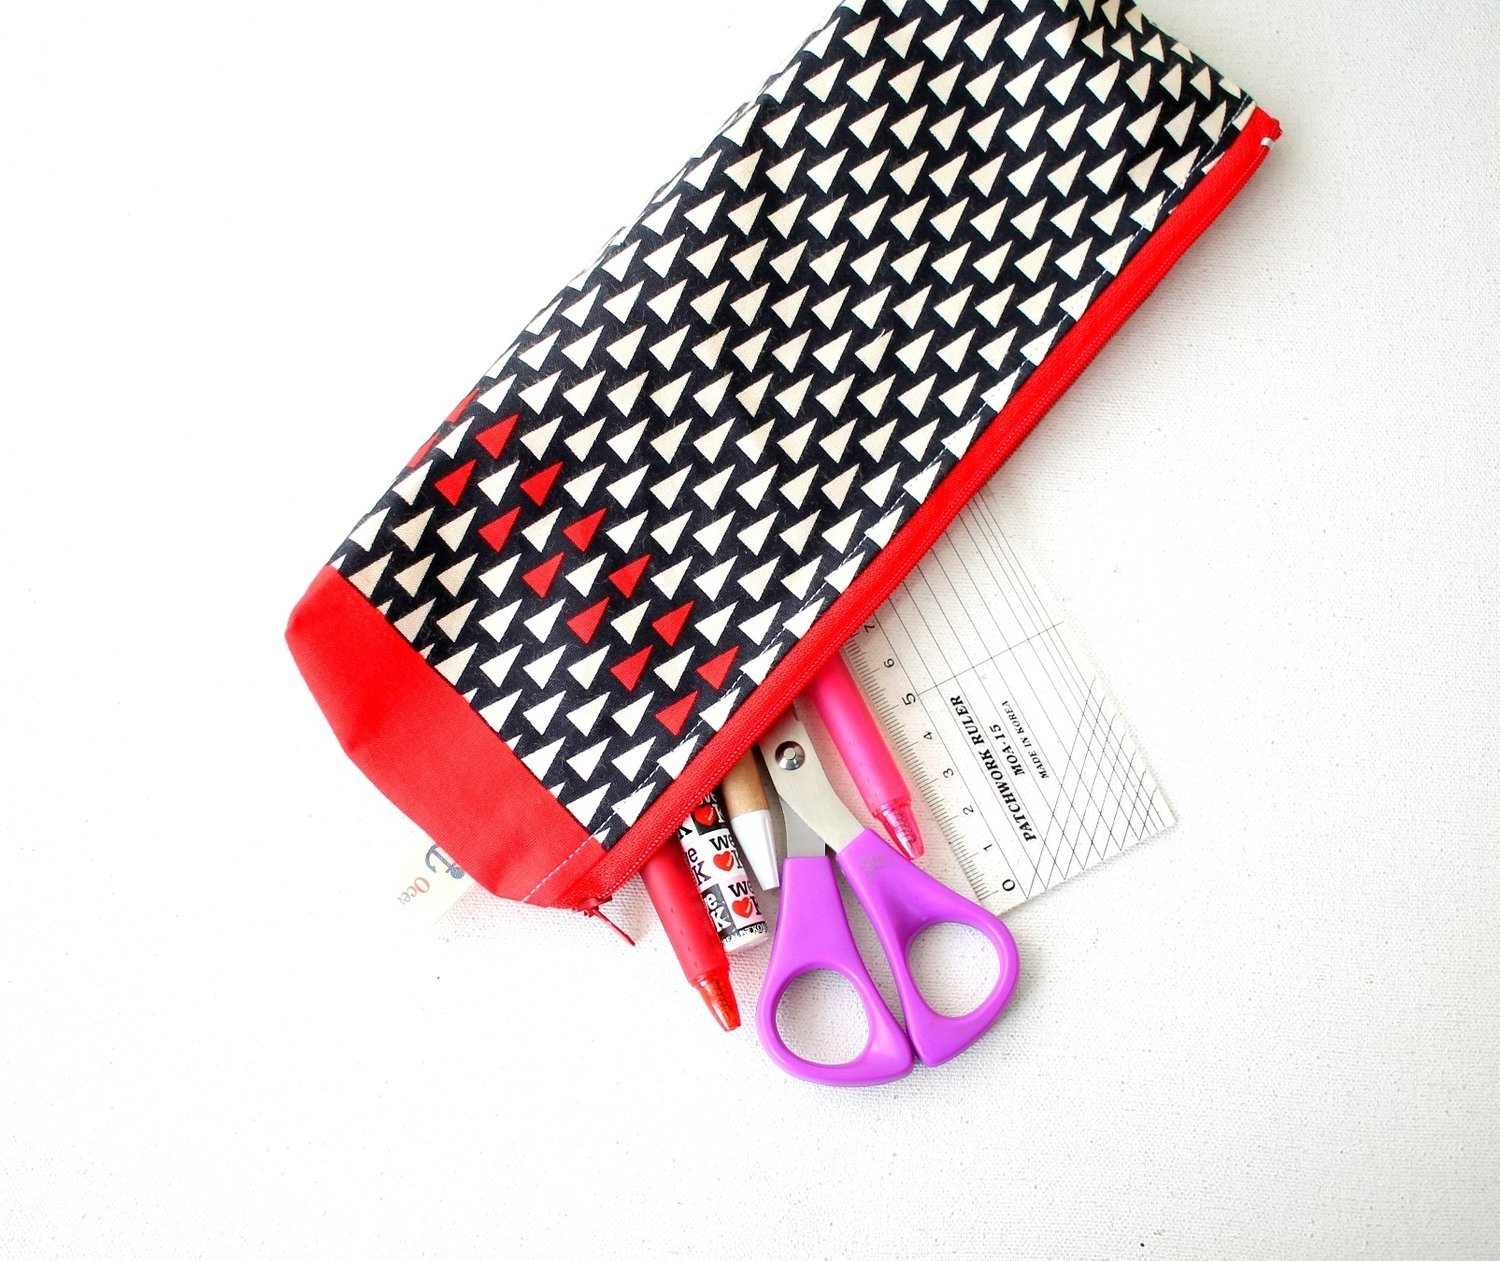 Handmade Red and Black  Zipper Pouch - One of a kind - Medium Size